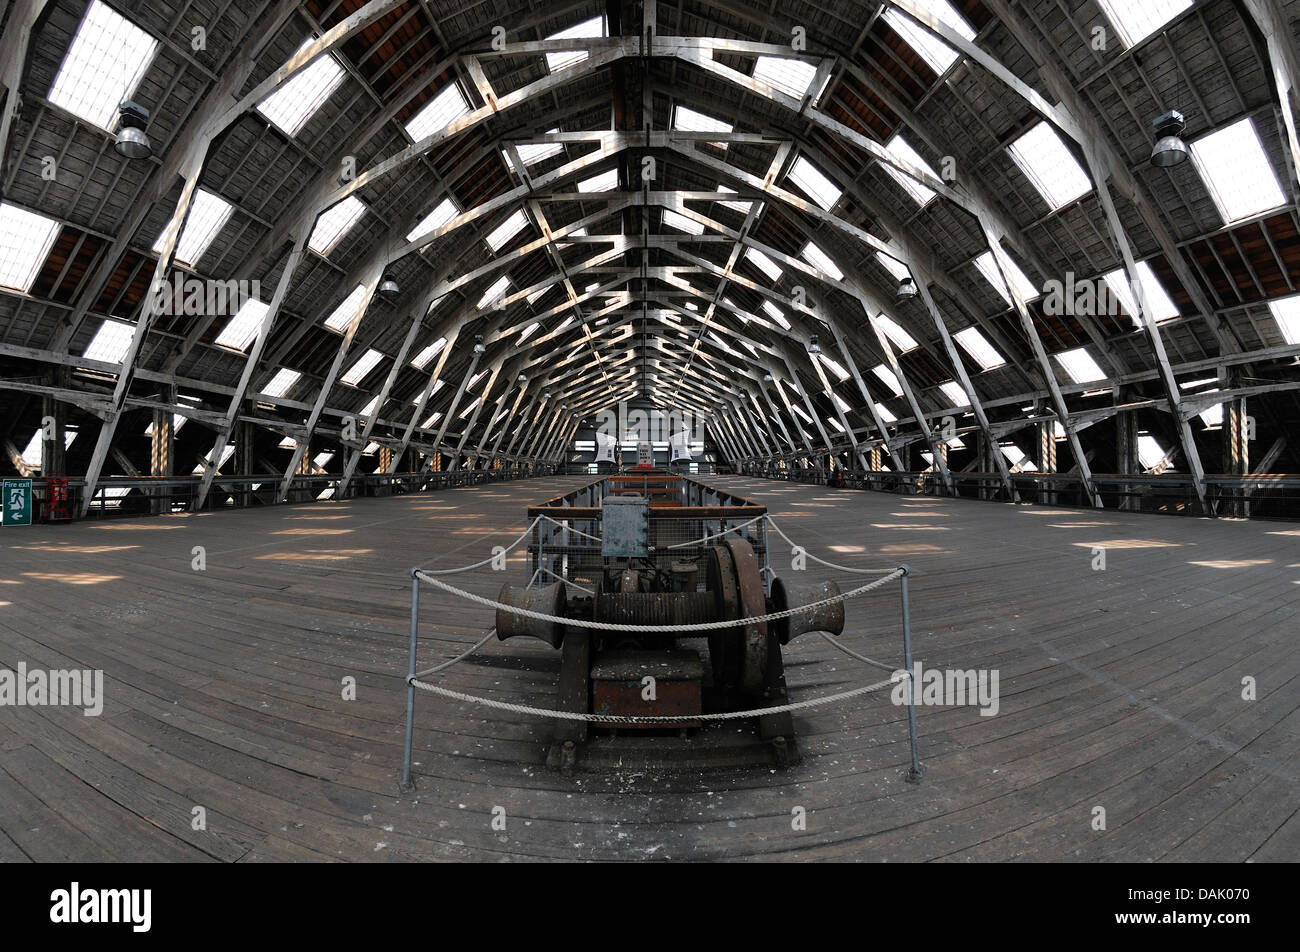 Chatham, Kent, England. Chatham Historic Dockyard. Covered slipway No 3 - The Big Space' - cantilevered timber - Stock Image